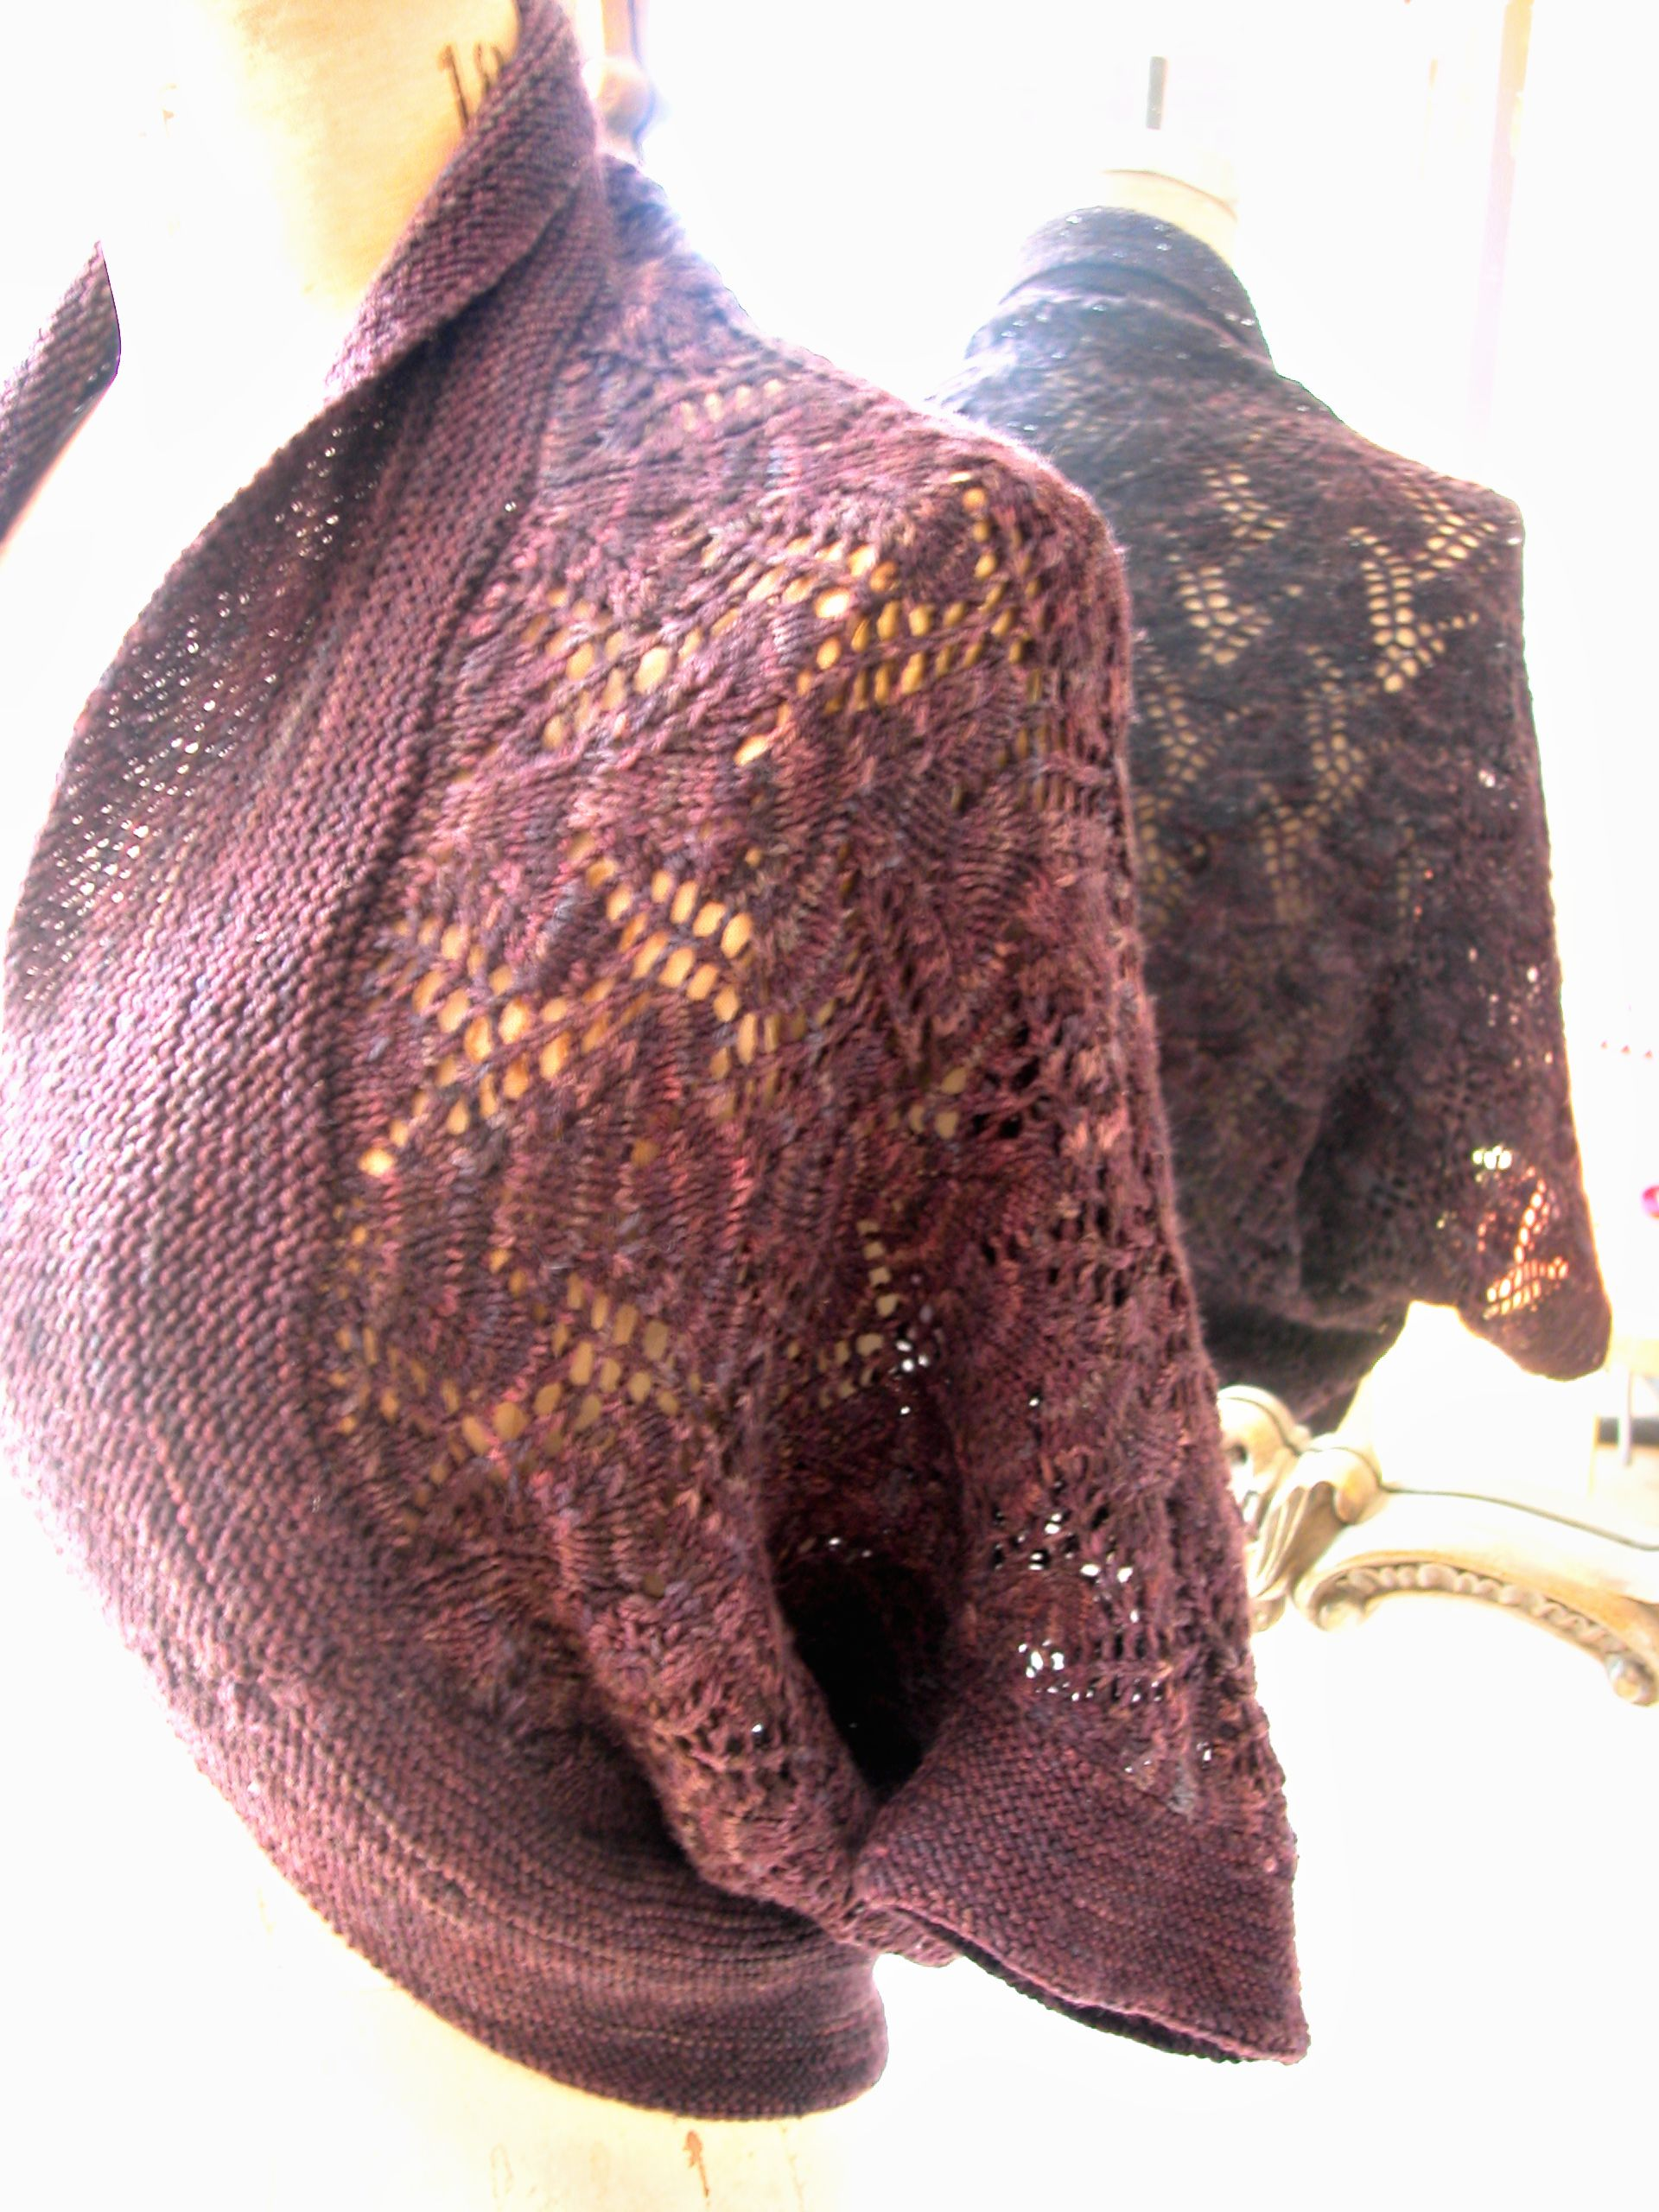 New KC patterns on Ravelry and a mittenlining tutorial